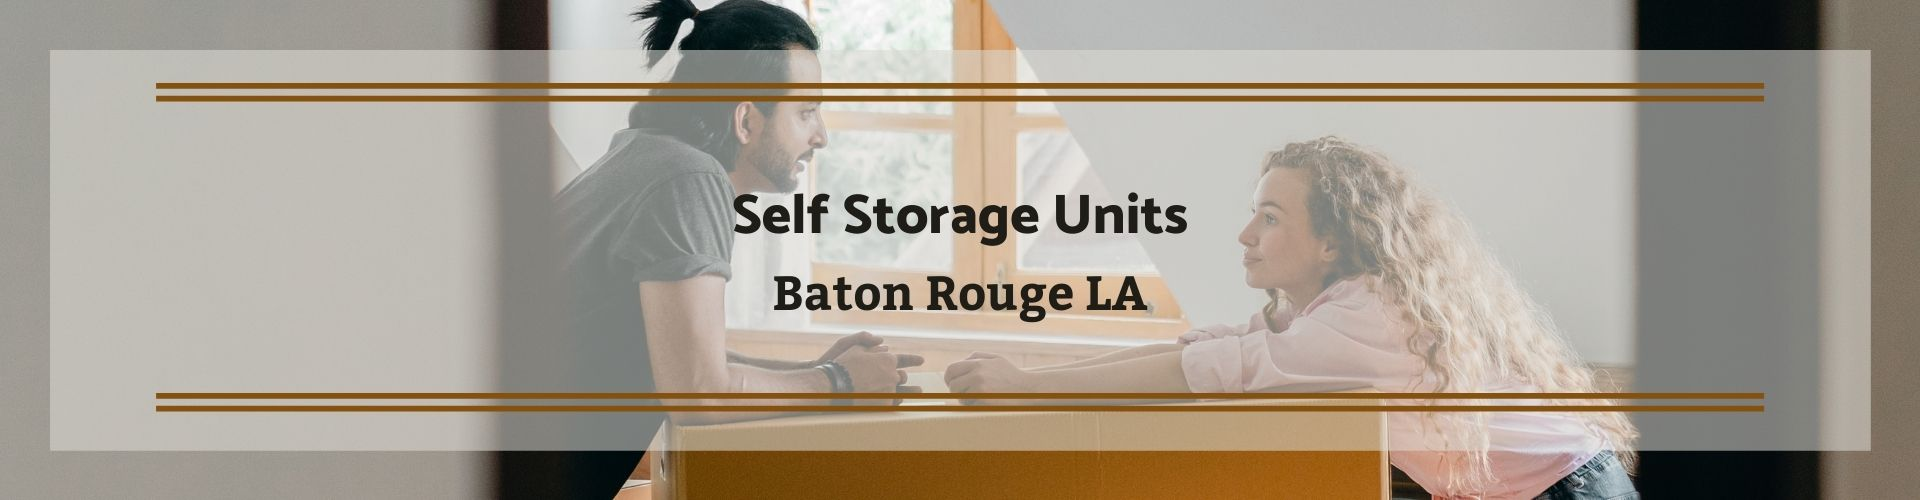 Self Storage Baton Rouge LA